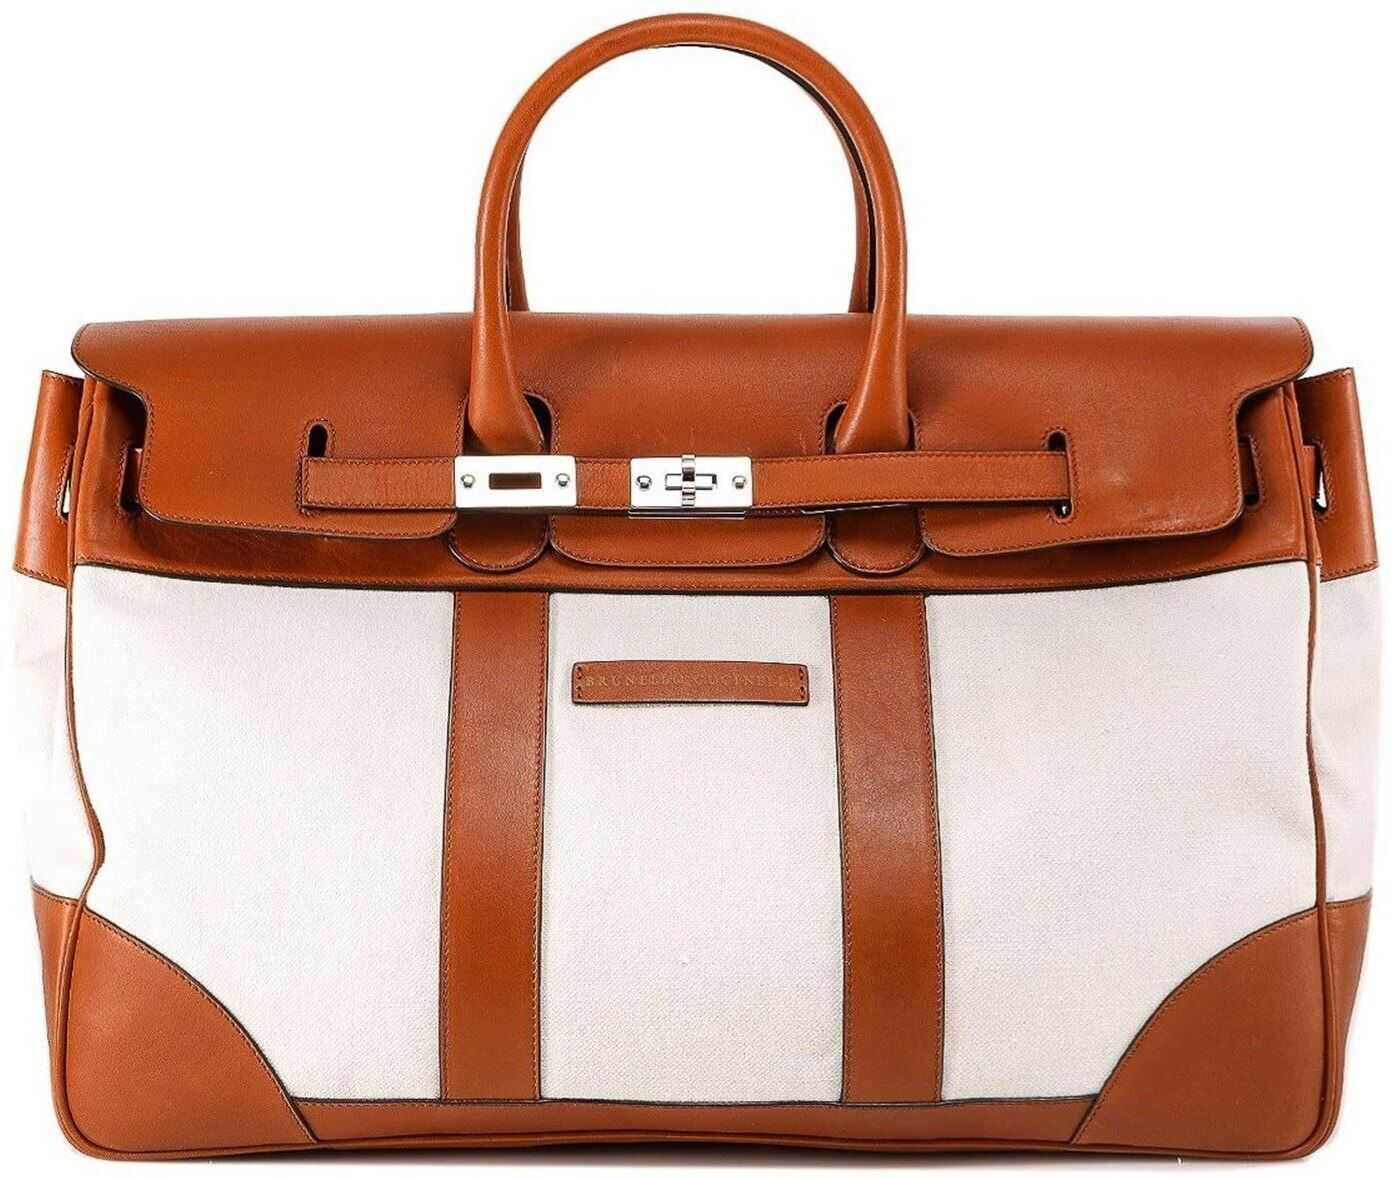 Brunello Cucinelli Weekender Country Bag In White And Brown MBTHU071CF120 White imagine b-mall.ro